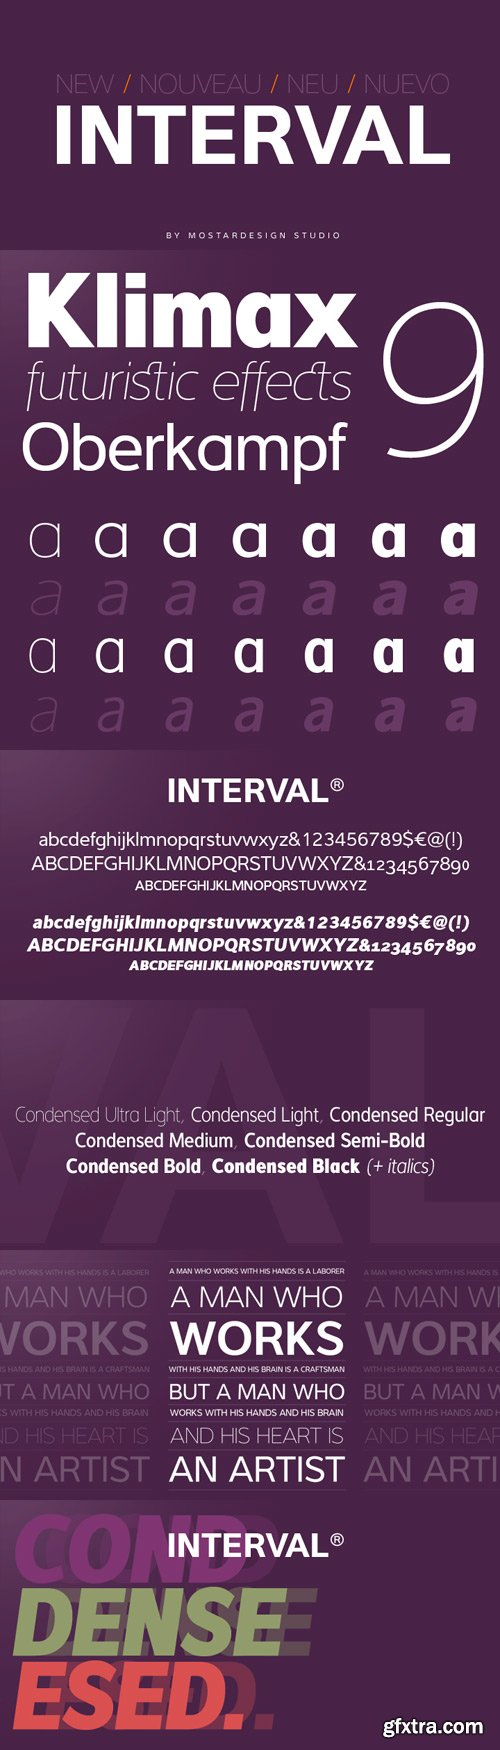 Interval Sans Pro Font Family - 14 Fonts (Incomplete Family) for $364